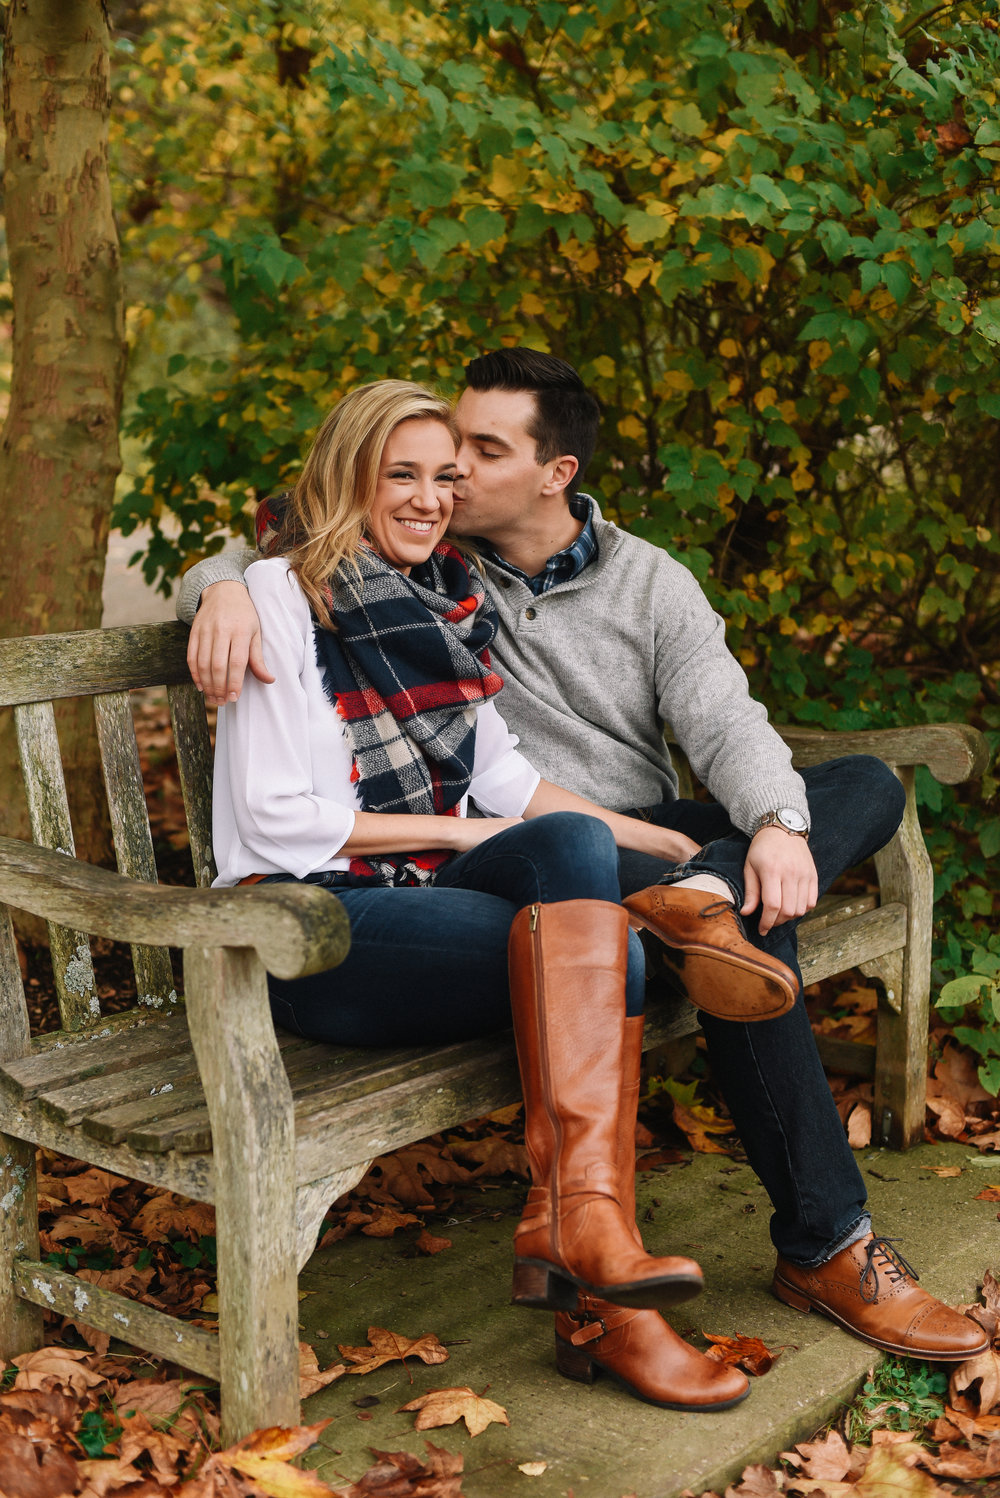 Downtown_Ann_Arbor_Arboretum_Engagement_Photos-3.jpg